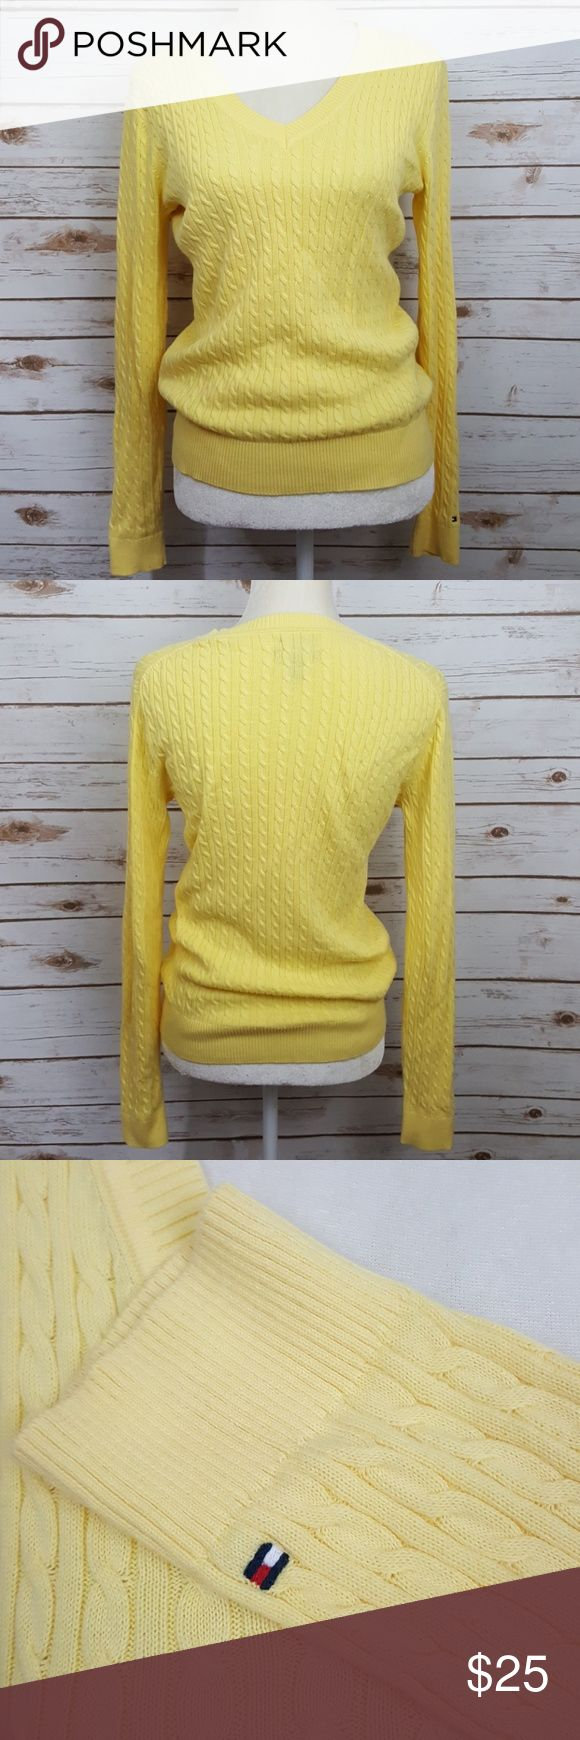 "Tommy Hilfiger yellow v-neck cable knit sweater Tommy Hilfiger yellow v-neck cable kint sweater Size medium Flat lay from arm pit to arm pit measures 18"" Shoulder to hem measures 23"" #352 Tommy Hilfiger Sweaters"